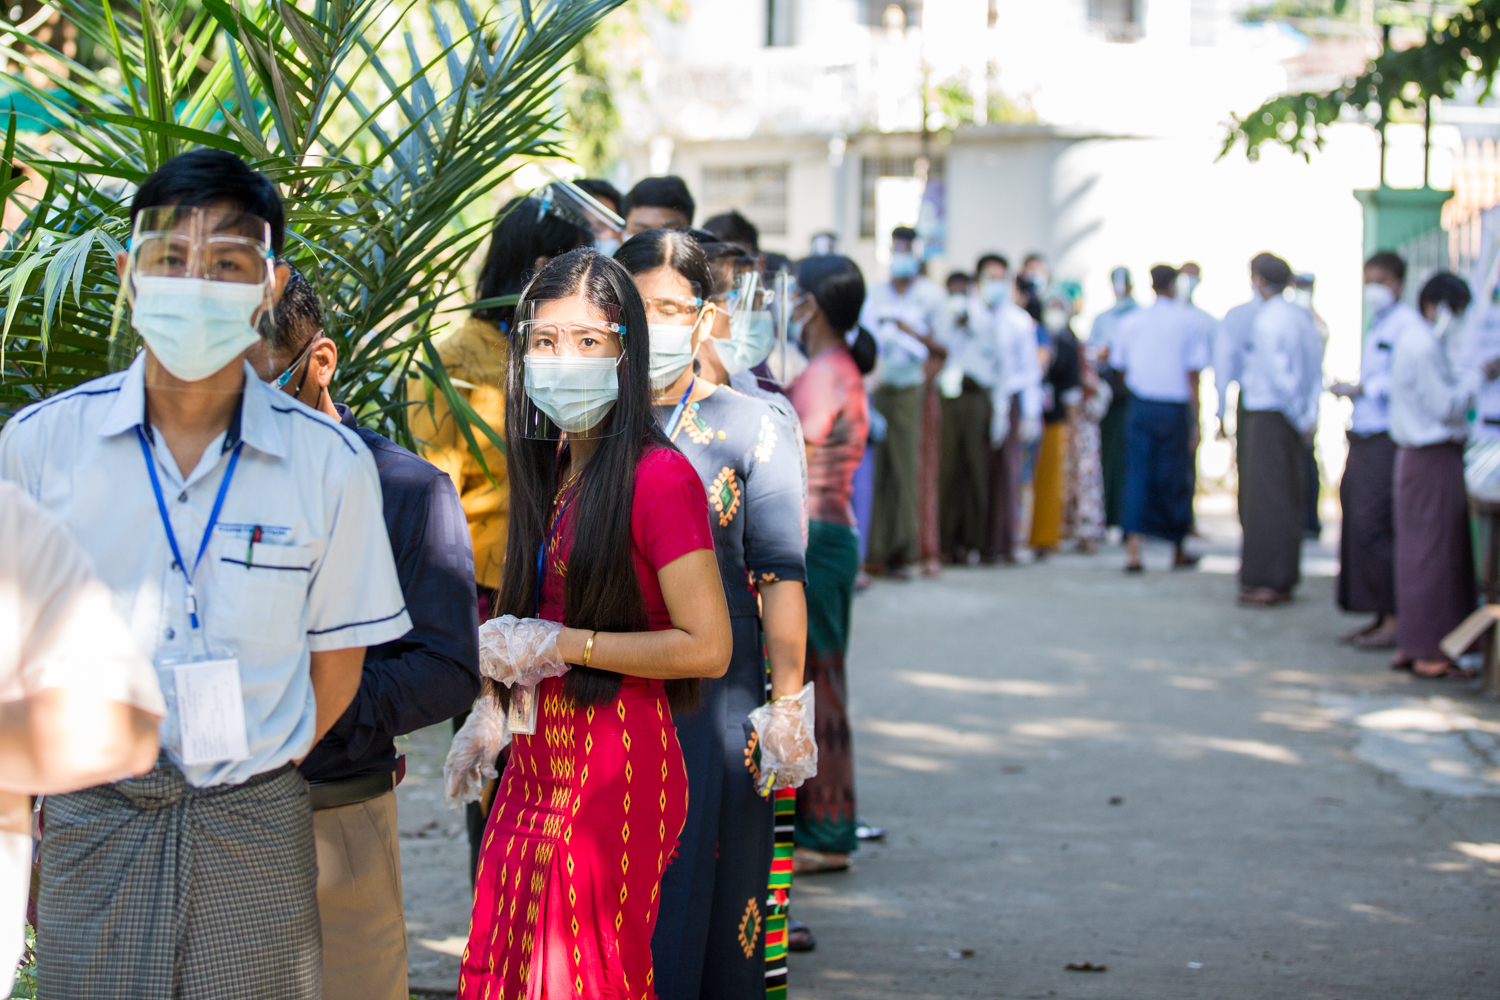 Voters in COVID-19 protective gear queue up to vote at a Mayangone Township polling station on November 9. (Thuya Zaw | Frontier)